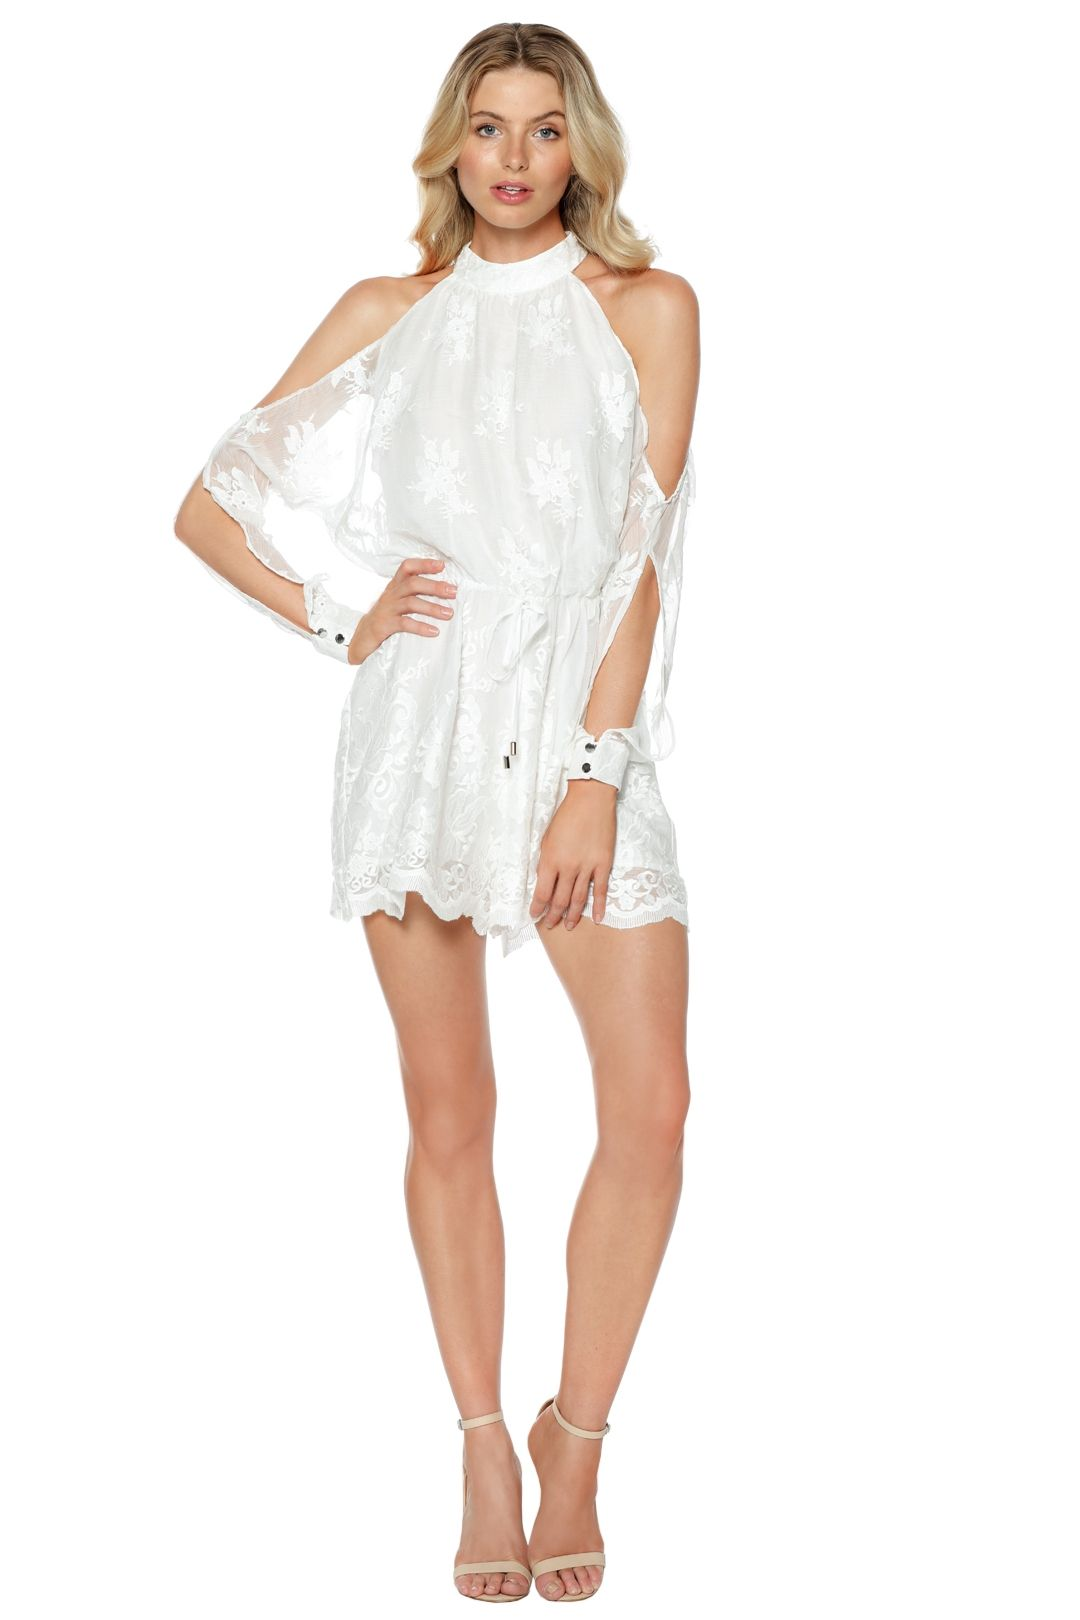 Ministry of Style - Campbell Playsuit - Ivory - Front